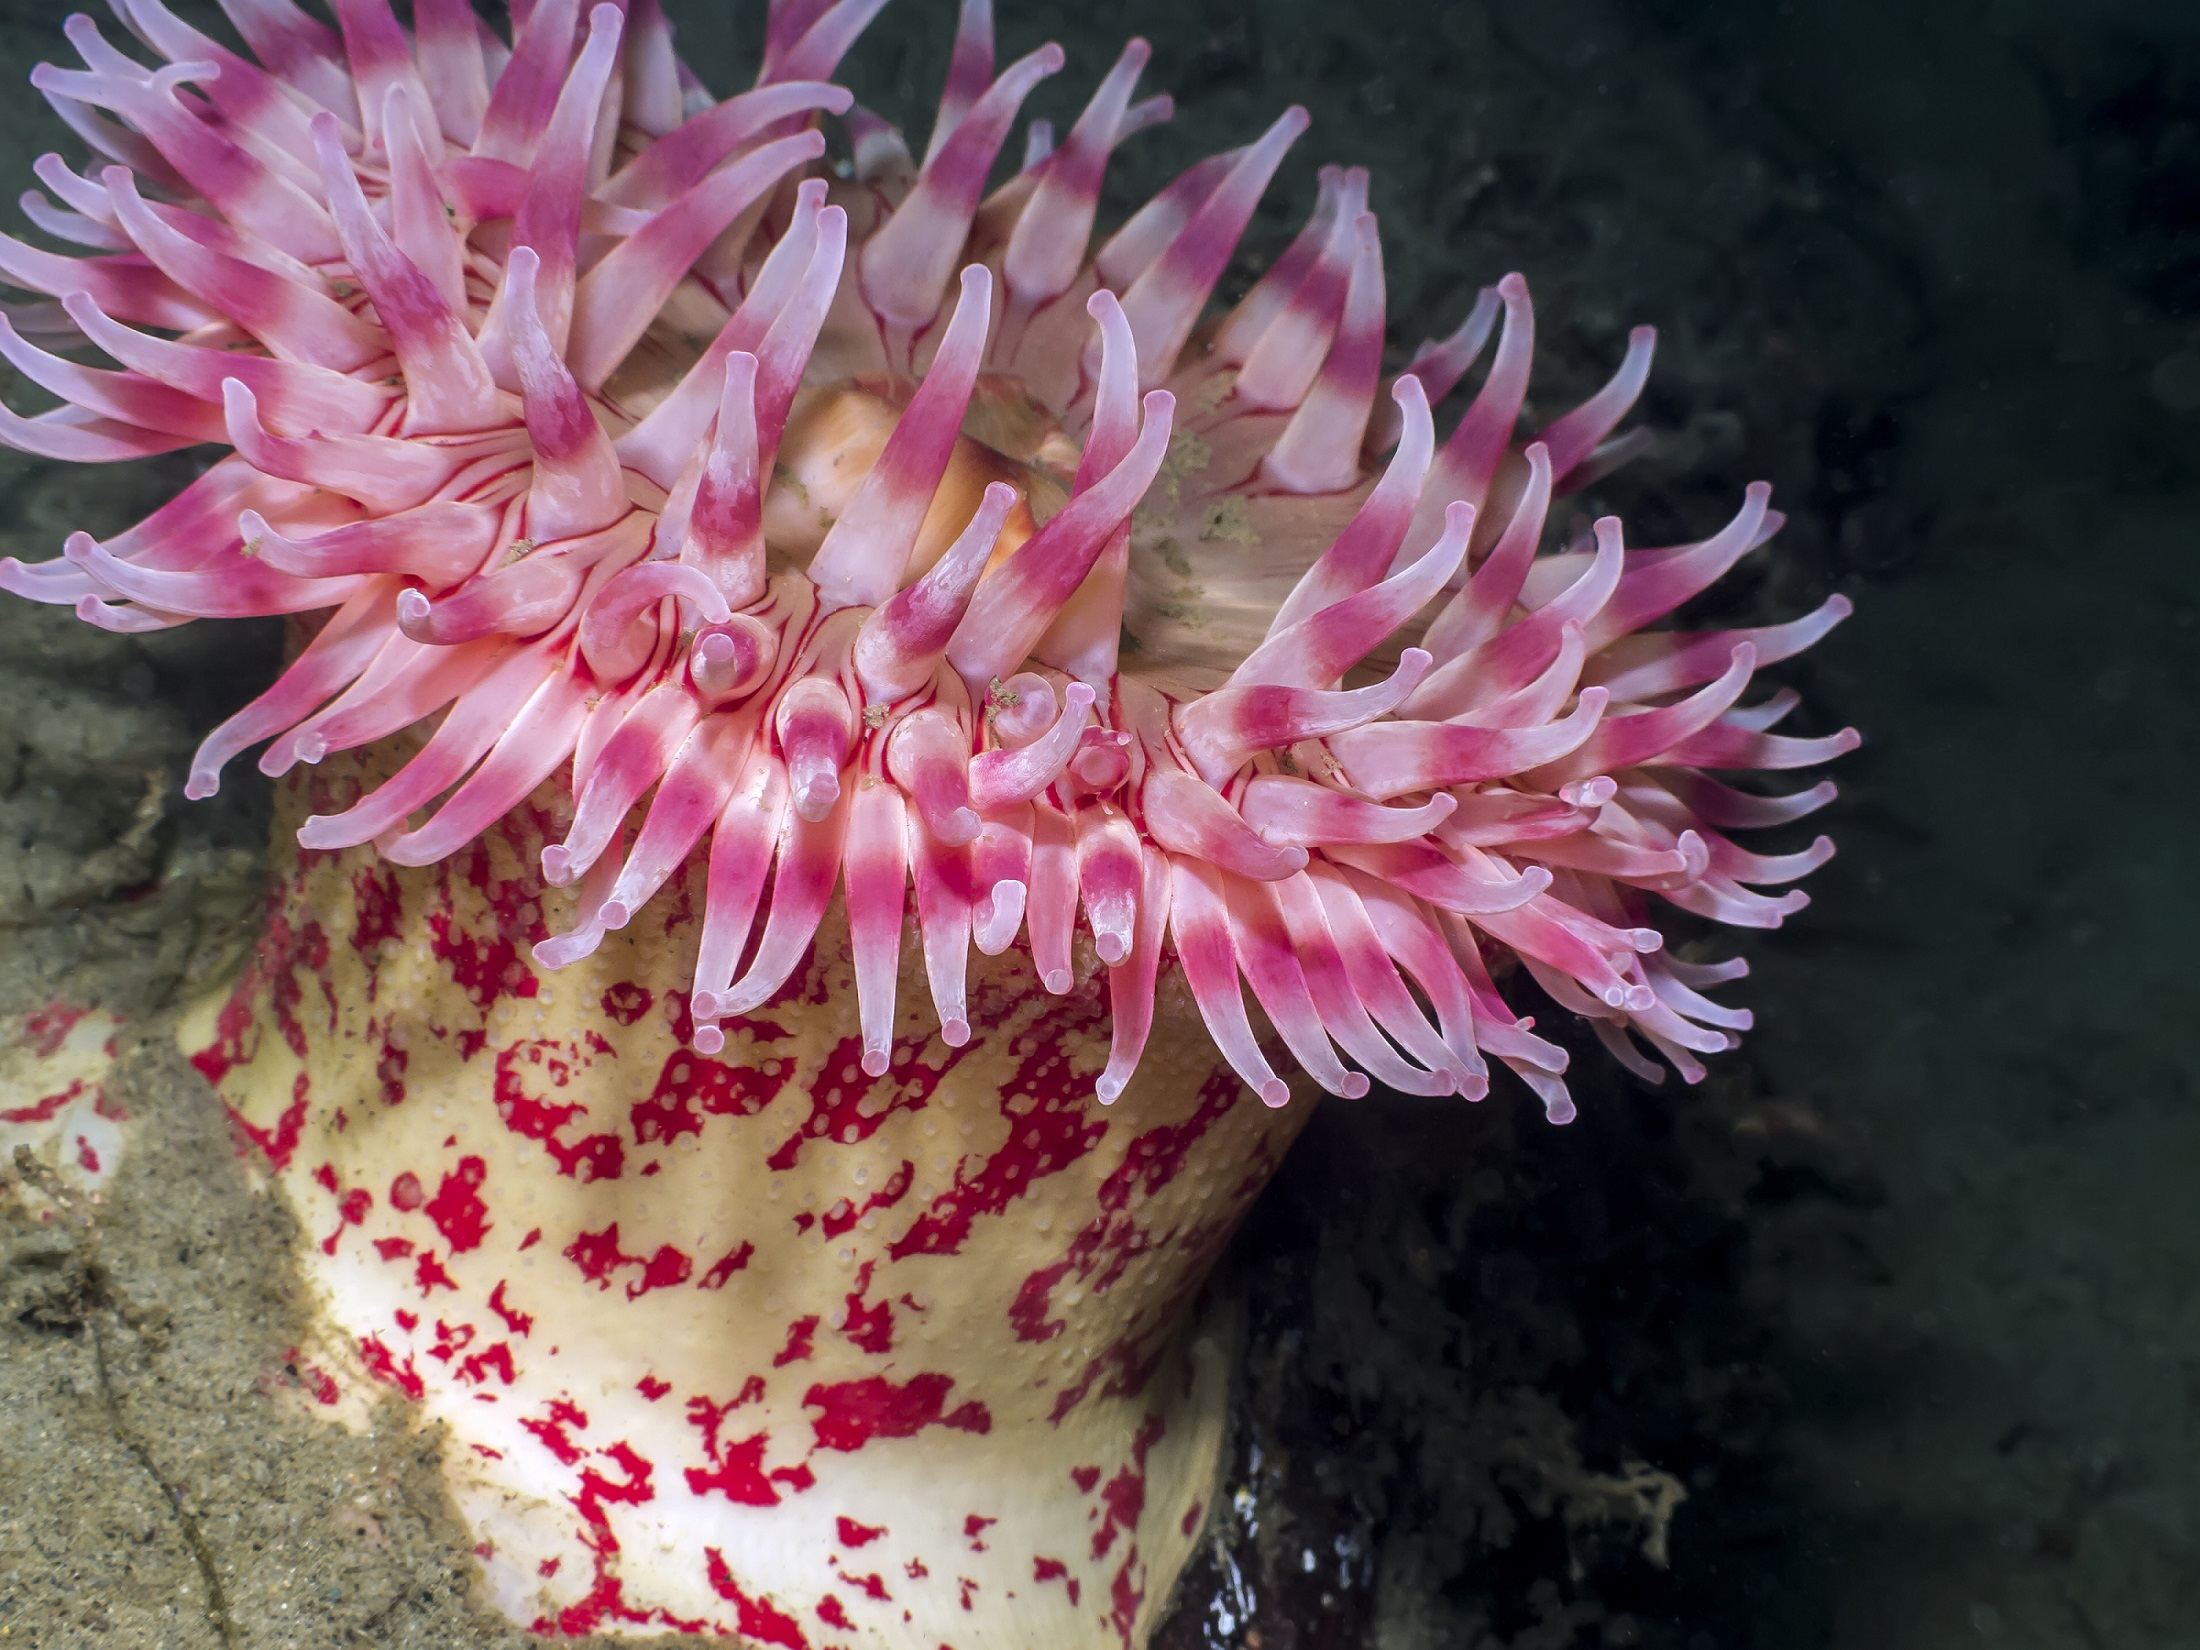 Striped pink sea anemone